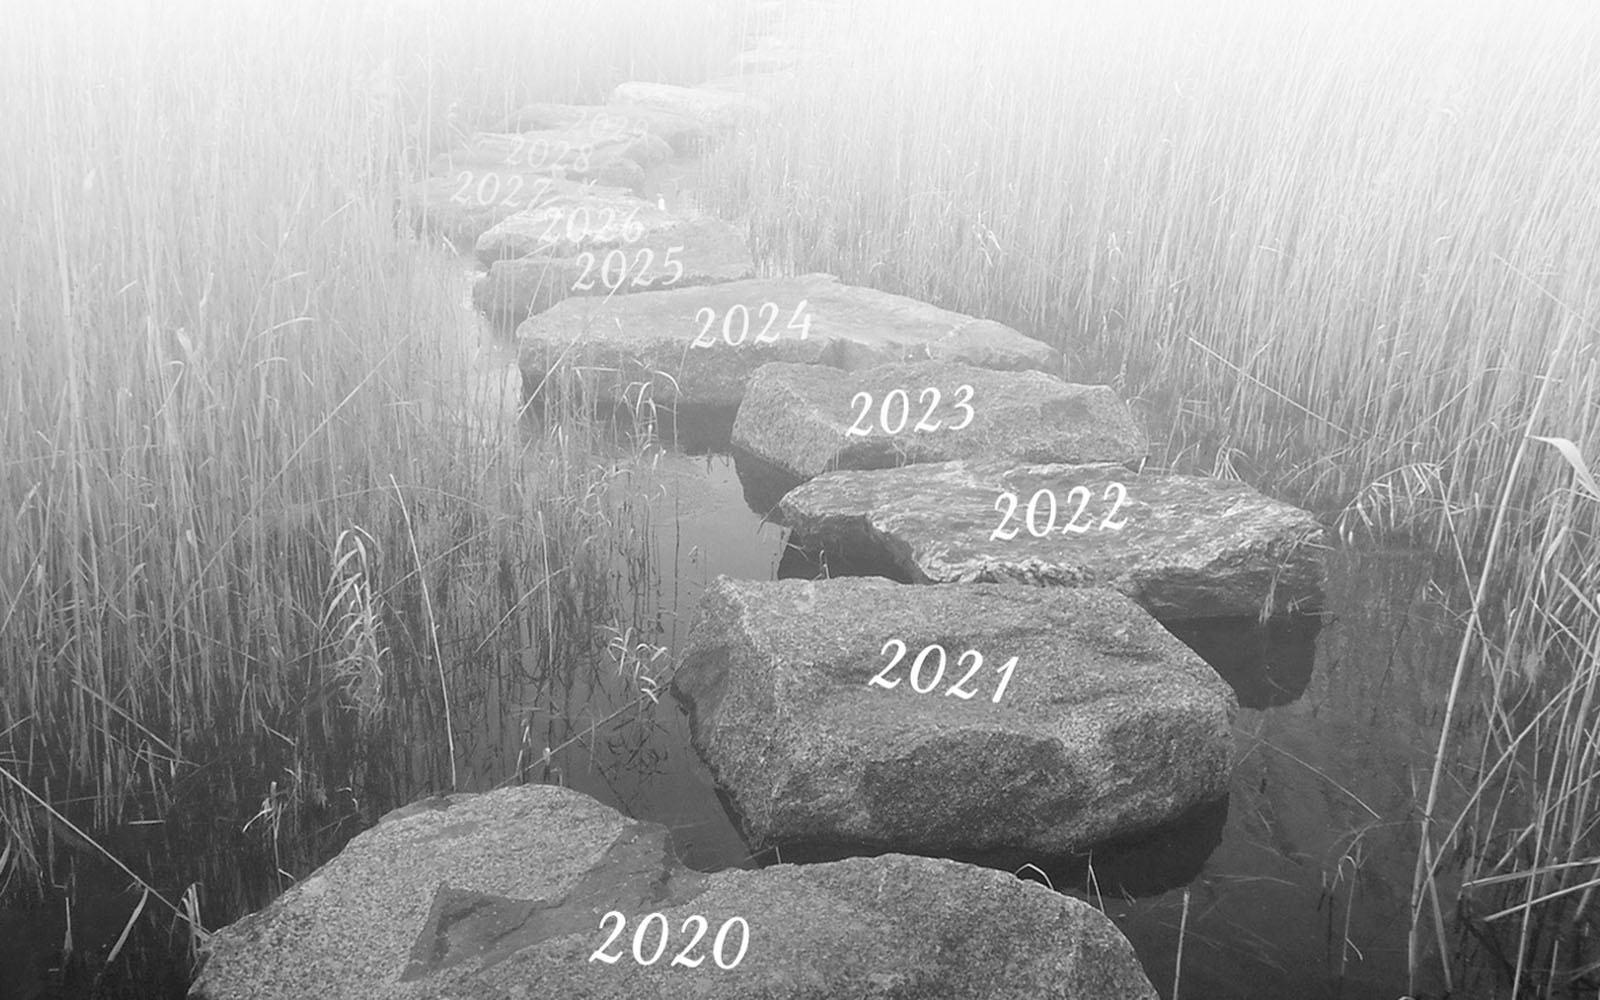 Stepping stones counting up in years